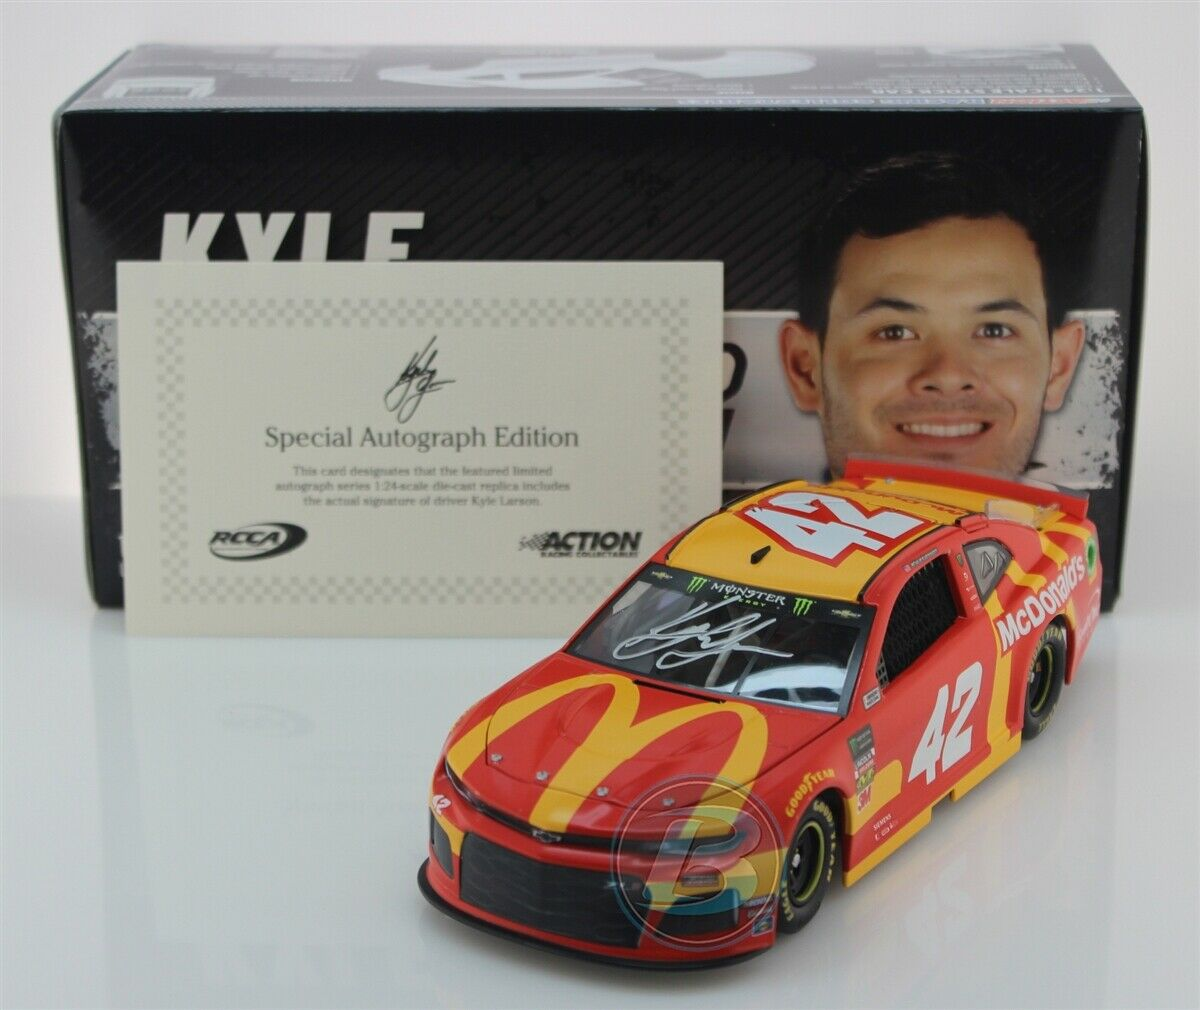 KYLE LARSON  42 2019 AUTOGRAPHED McDONALD'S 1 24 SCALE IN STOCK FREE SHIPPING